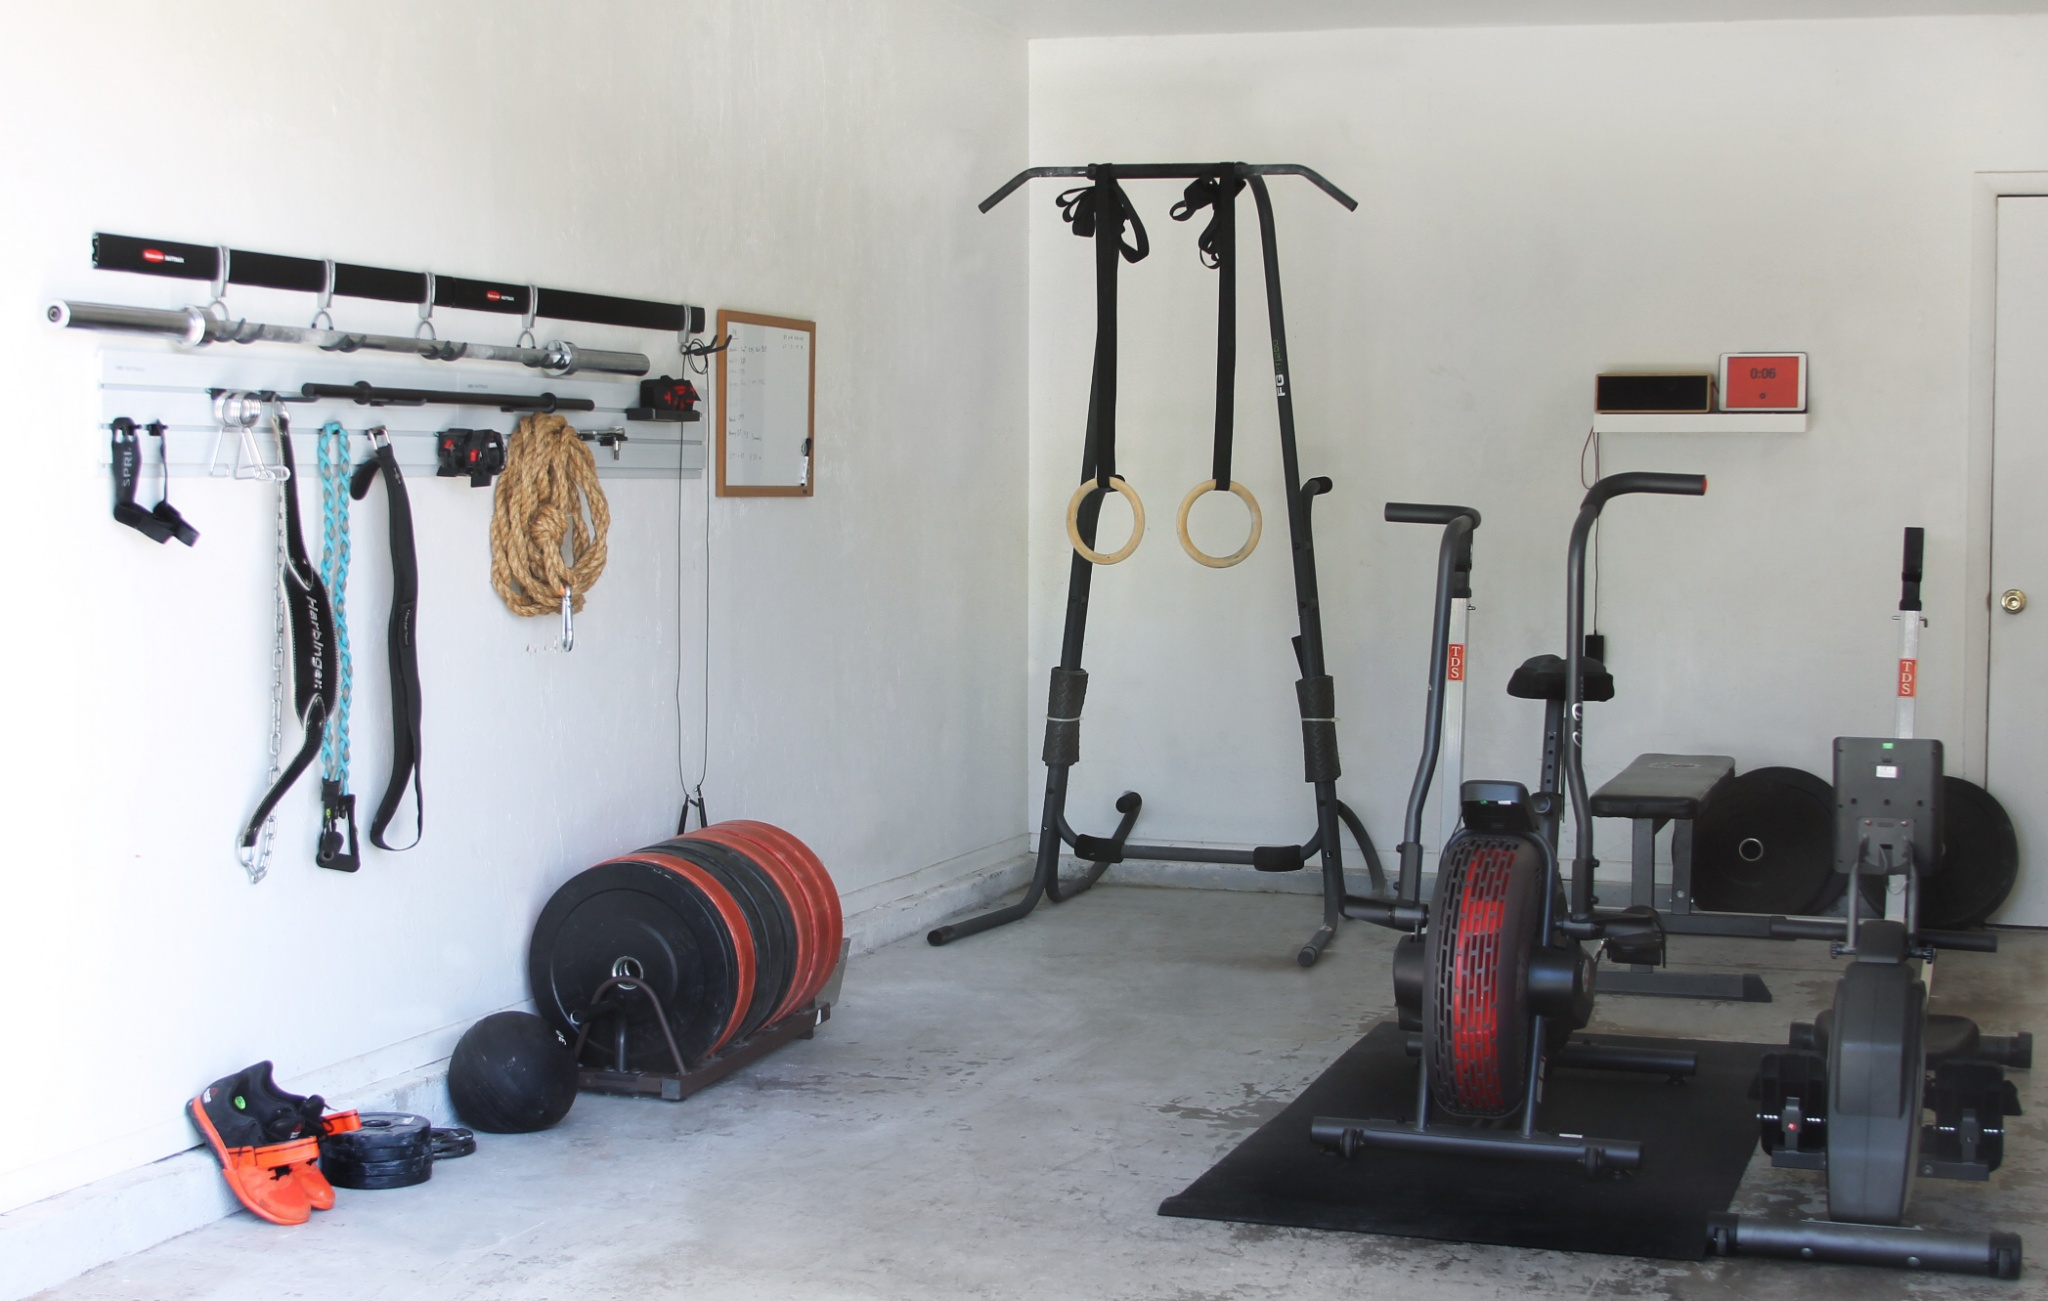 Garage Gym Storage Ideas 5 Easy Steps For Turning Your Garage Into A Gym Growing